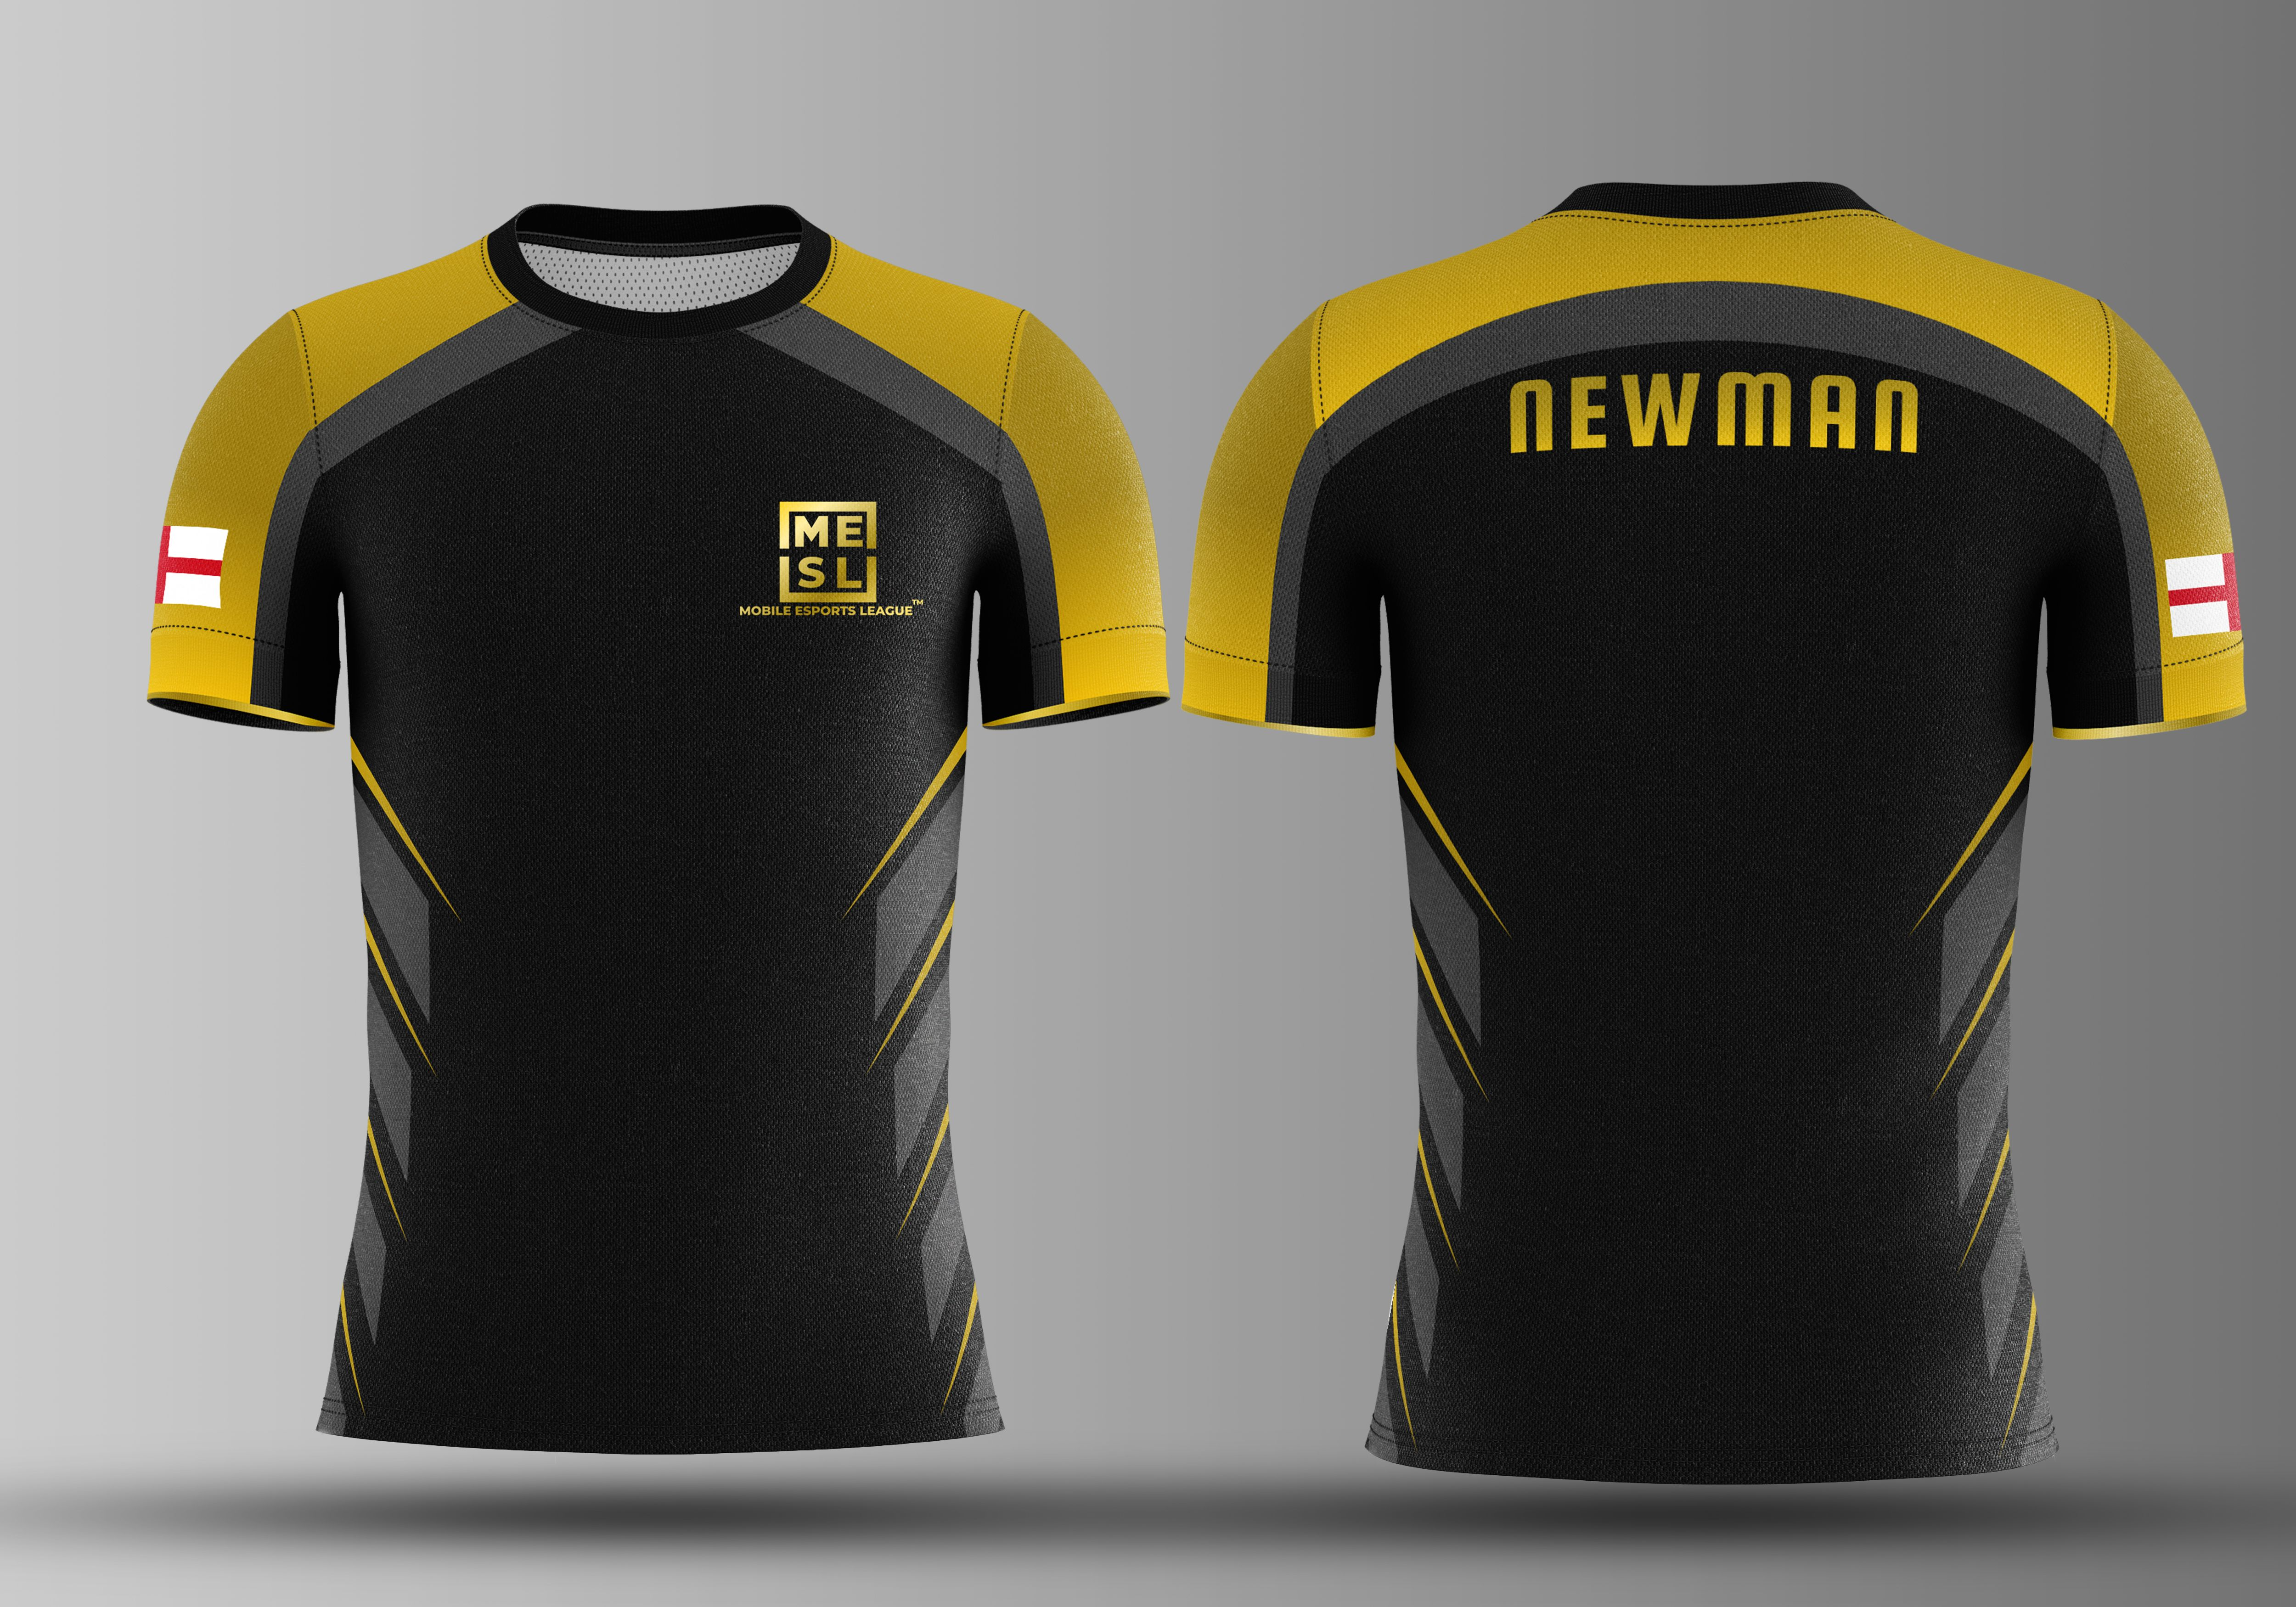 Download Under21 I Will Design Jersey For Esports Soccer Etc In 24 Hours For 10 On Fiverr Com Jersey Design Sport T Shirt Polo T Shirts